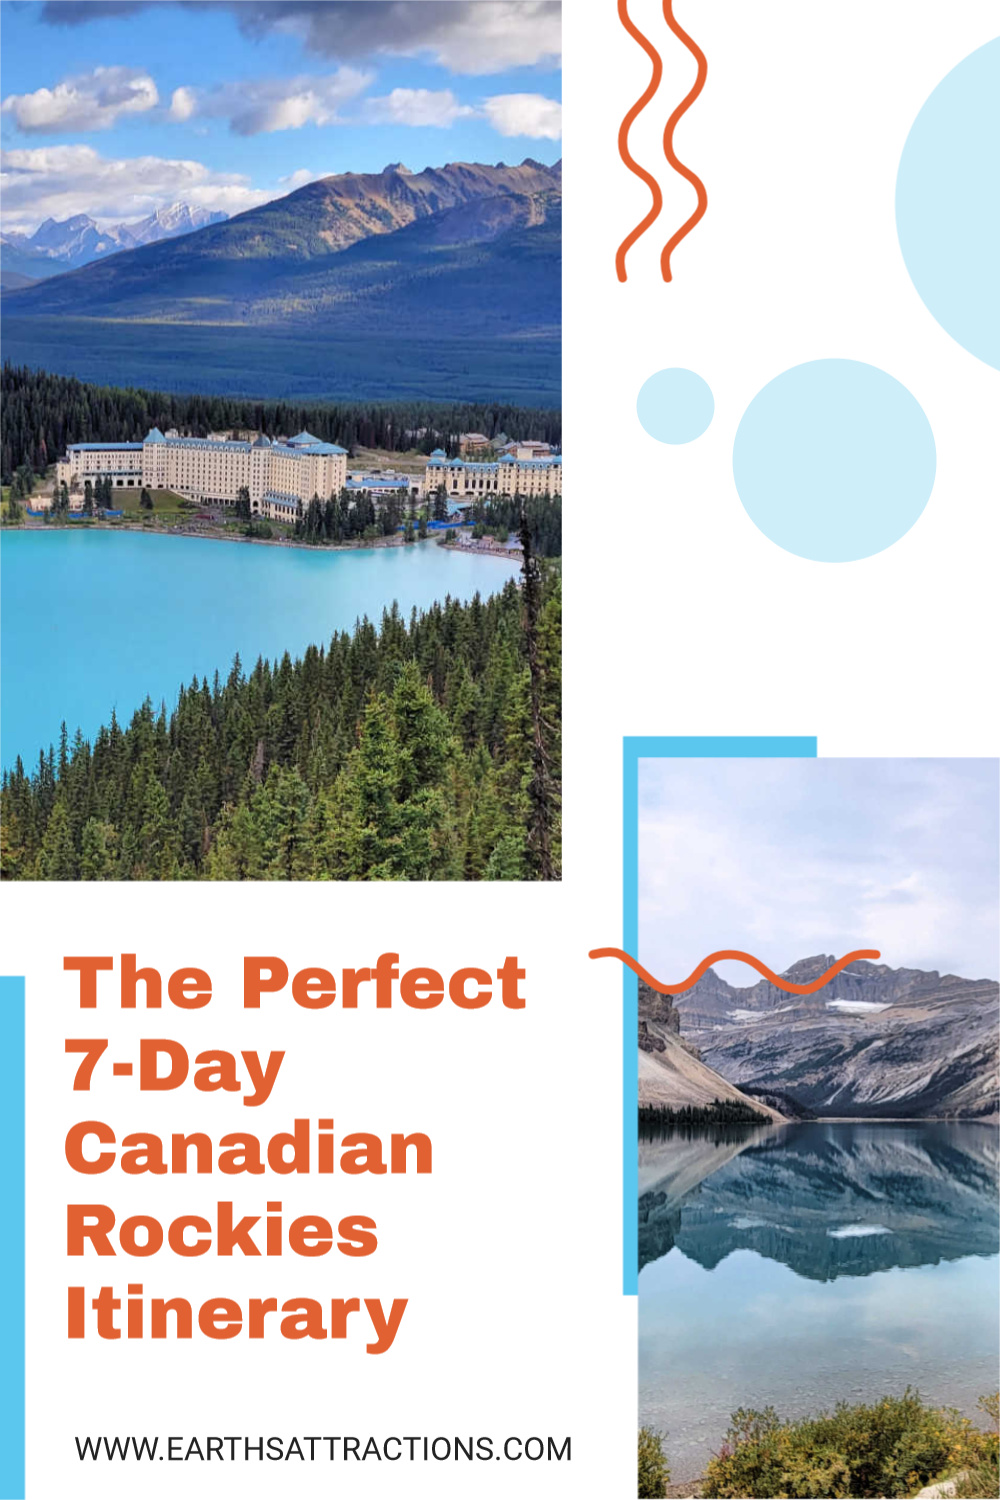 The best Canadian Rockies itinerary. Find out what to do in the Canadian Rockies in 7 days from this local's Canadian Rockies itinerary. Make the most of your Canada trip and spend some time outdoor. #canada #canadianrockies #rockies #outdoor #jasper #banff #northamerica #northamericatravel #canadatravel #traveldestinations